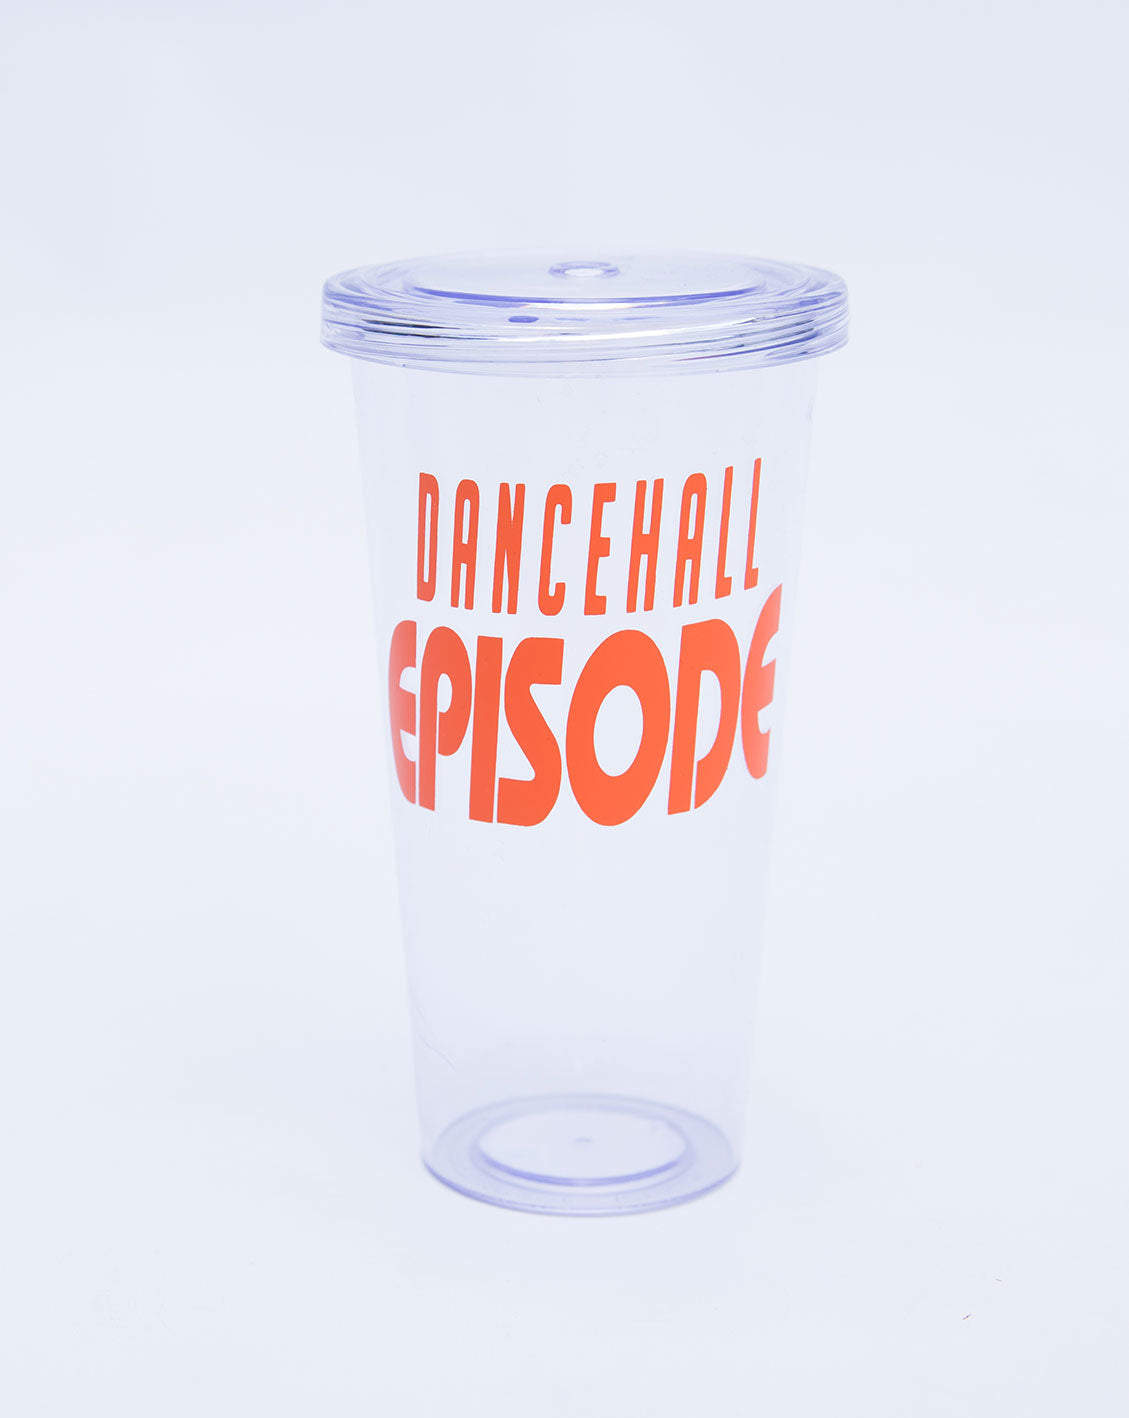 Dancehall Episode Signature Cup